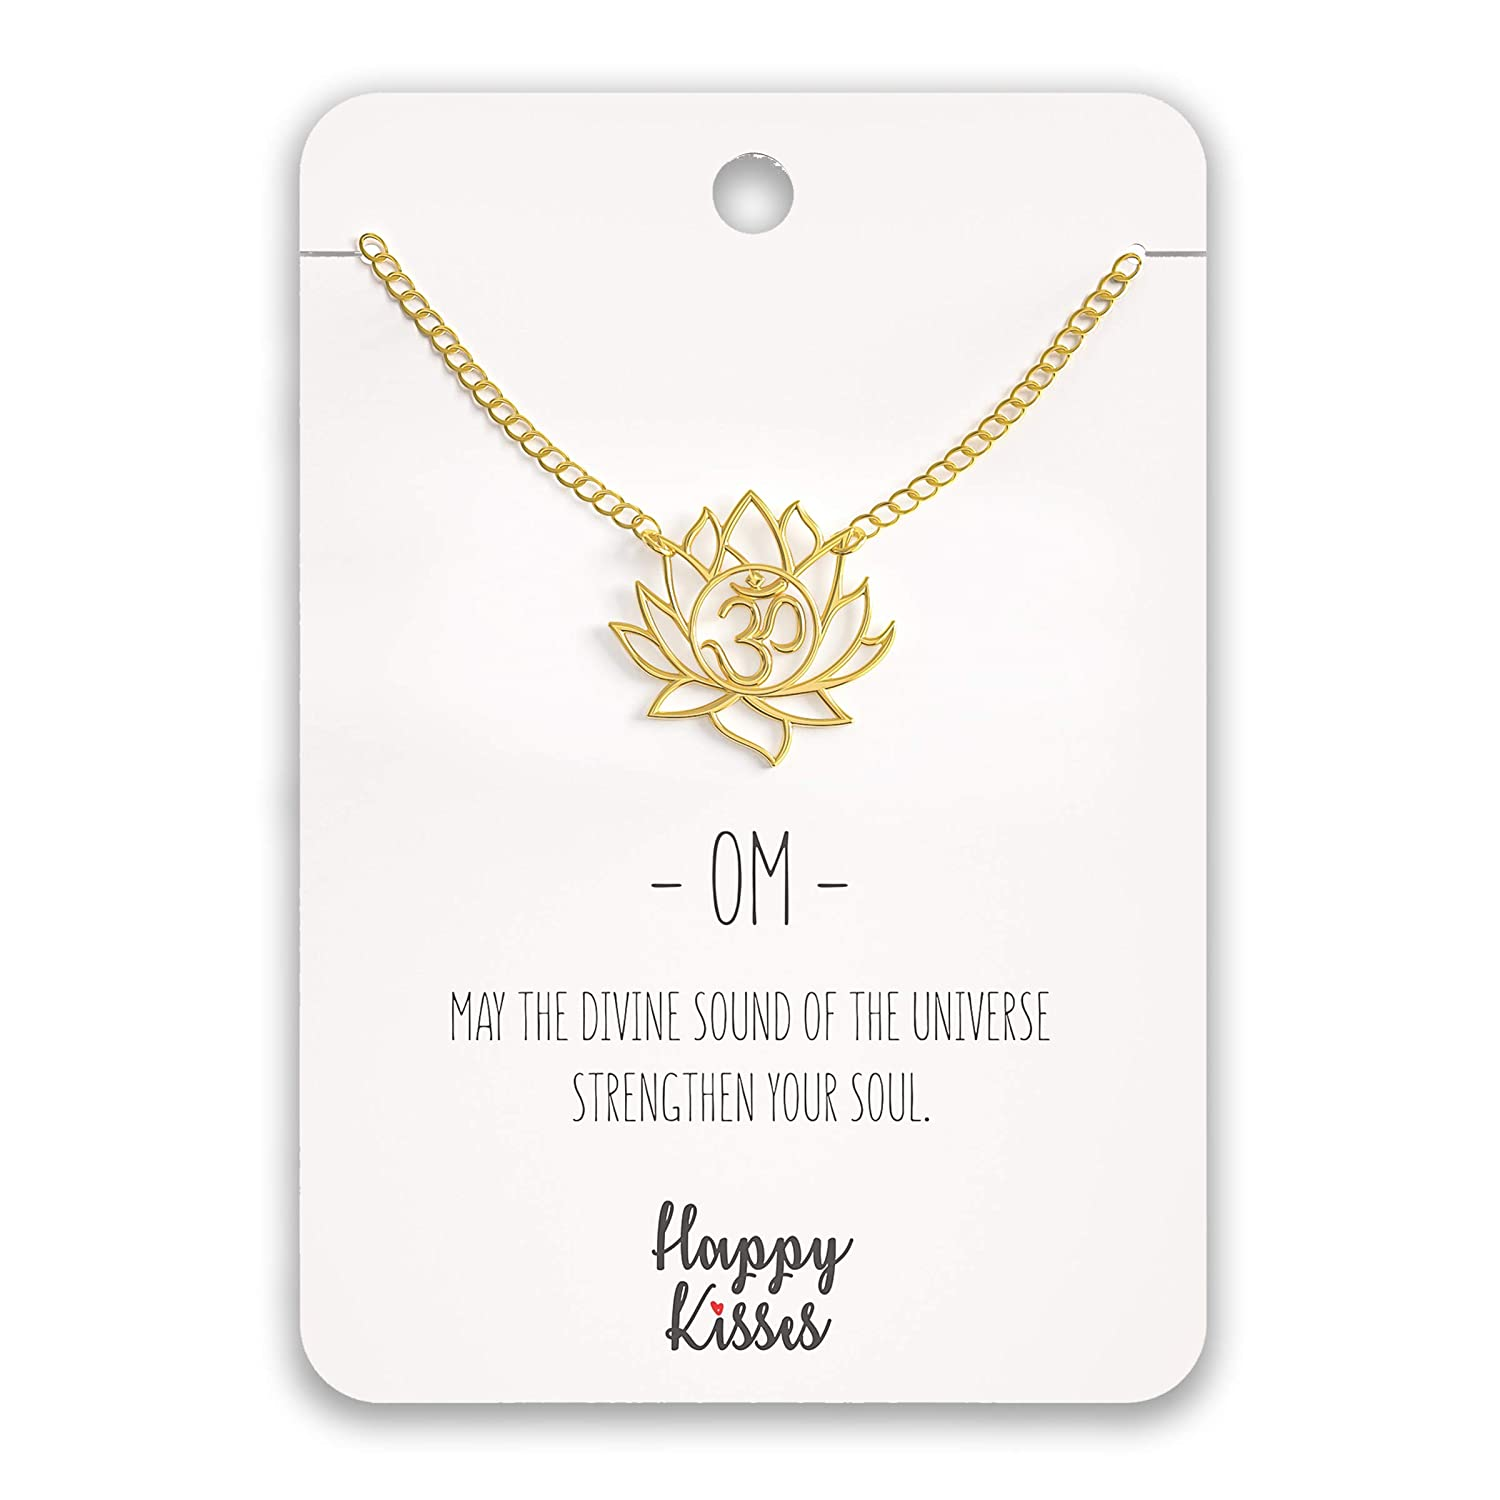 Happy Kisses Yoga Lotus Flower Necklace with OM Symbol – Cute Lotus Pendant Charm – with Empowering Message Card -Silver Plated